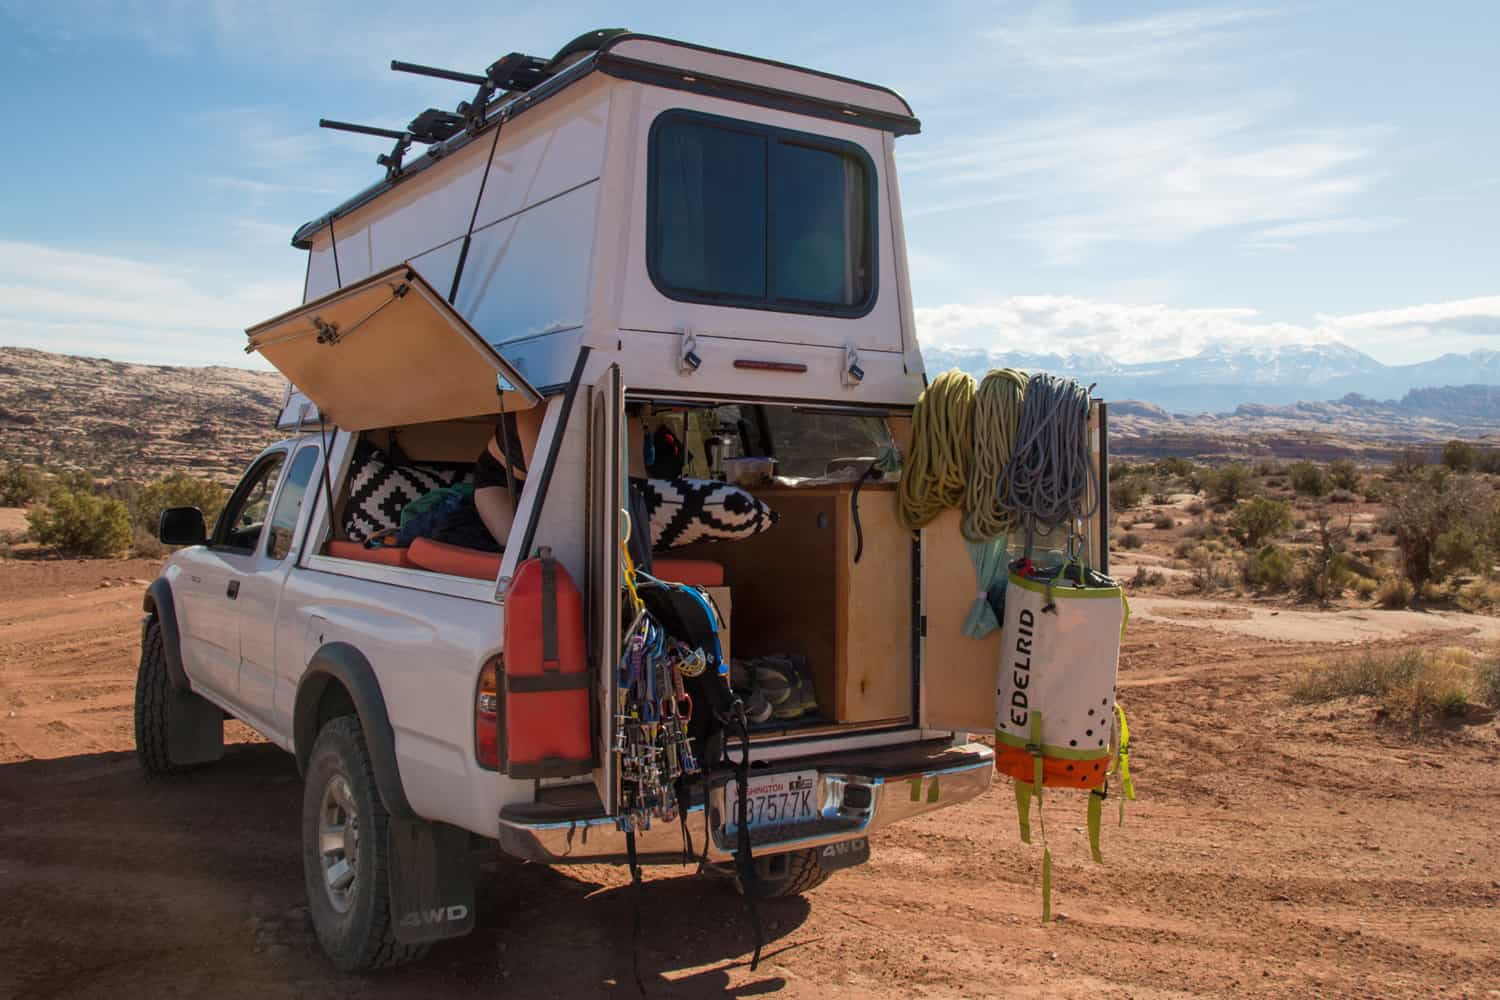 How To Build A Lightweight Truck Camper [The DIY Guide]